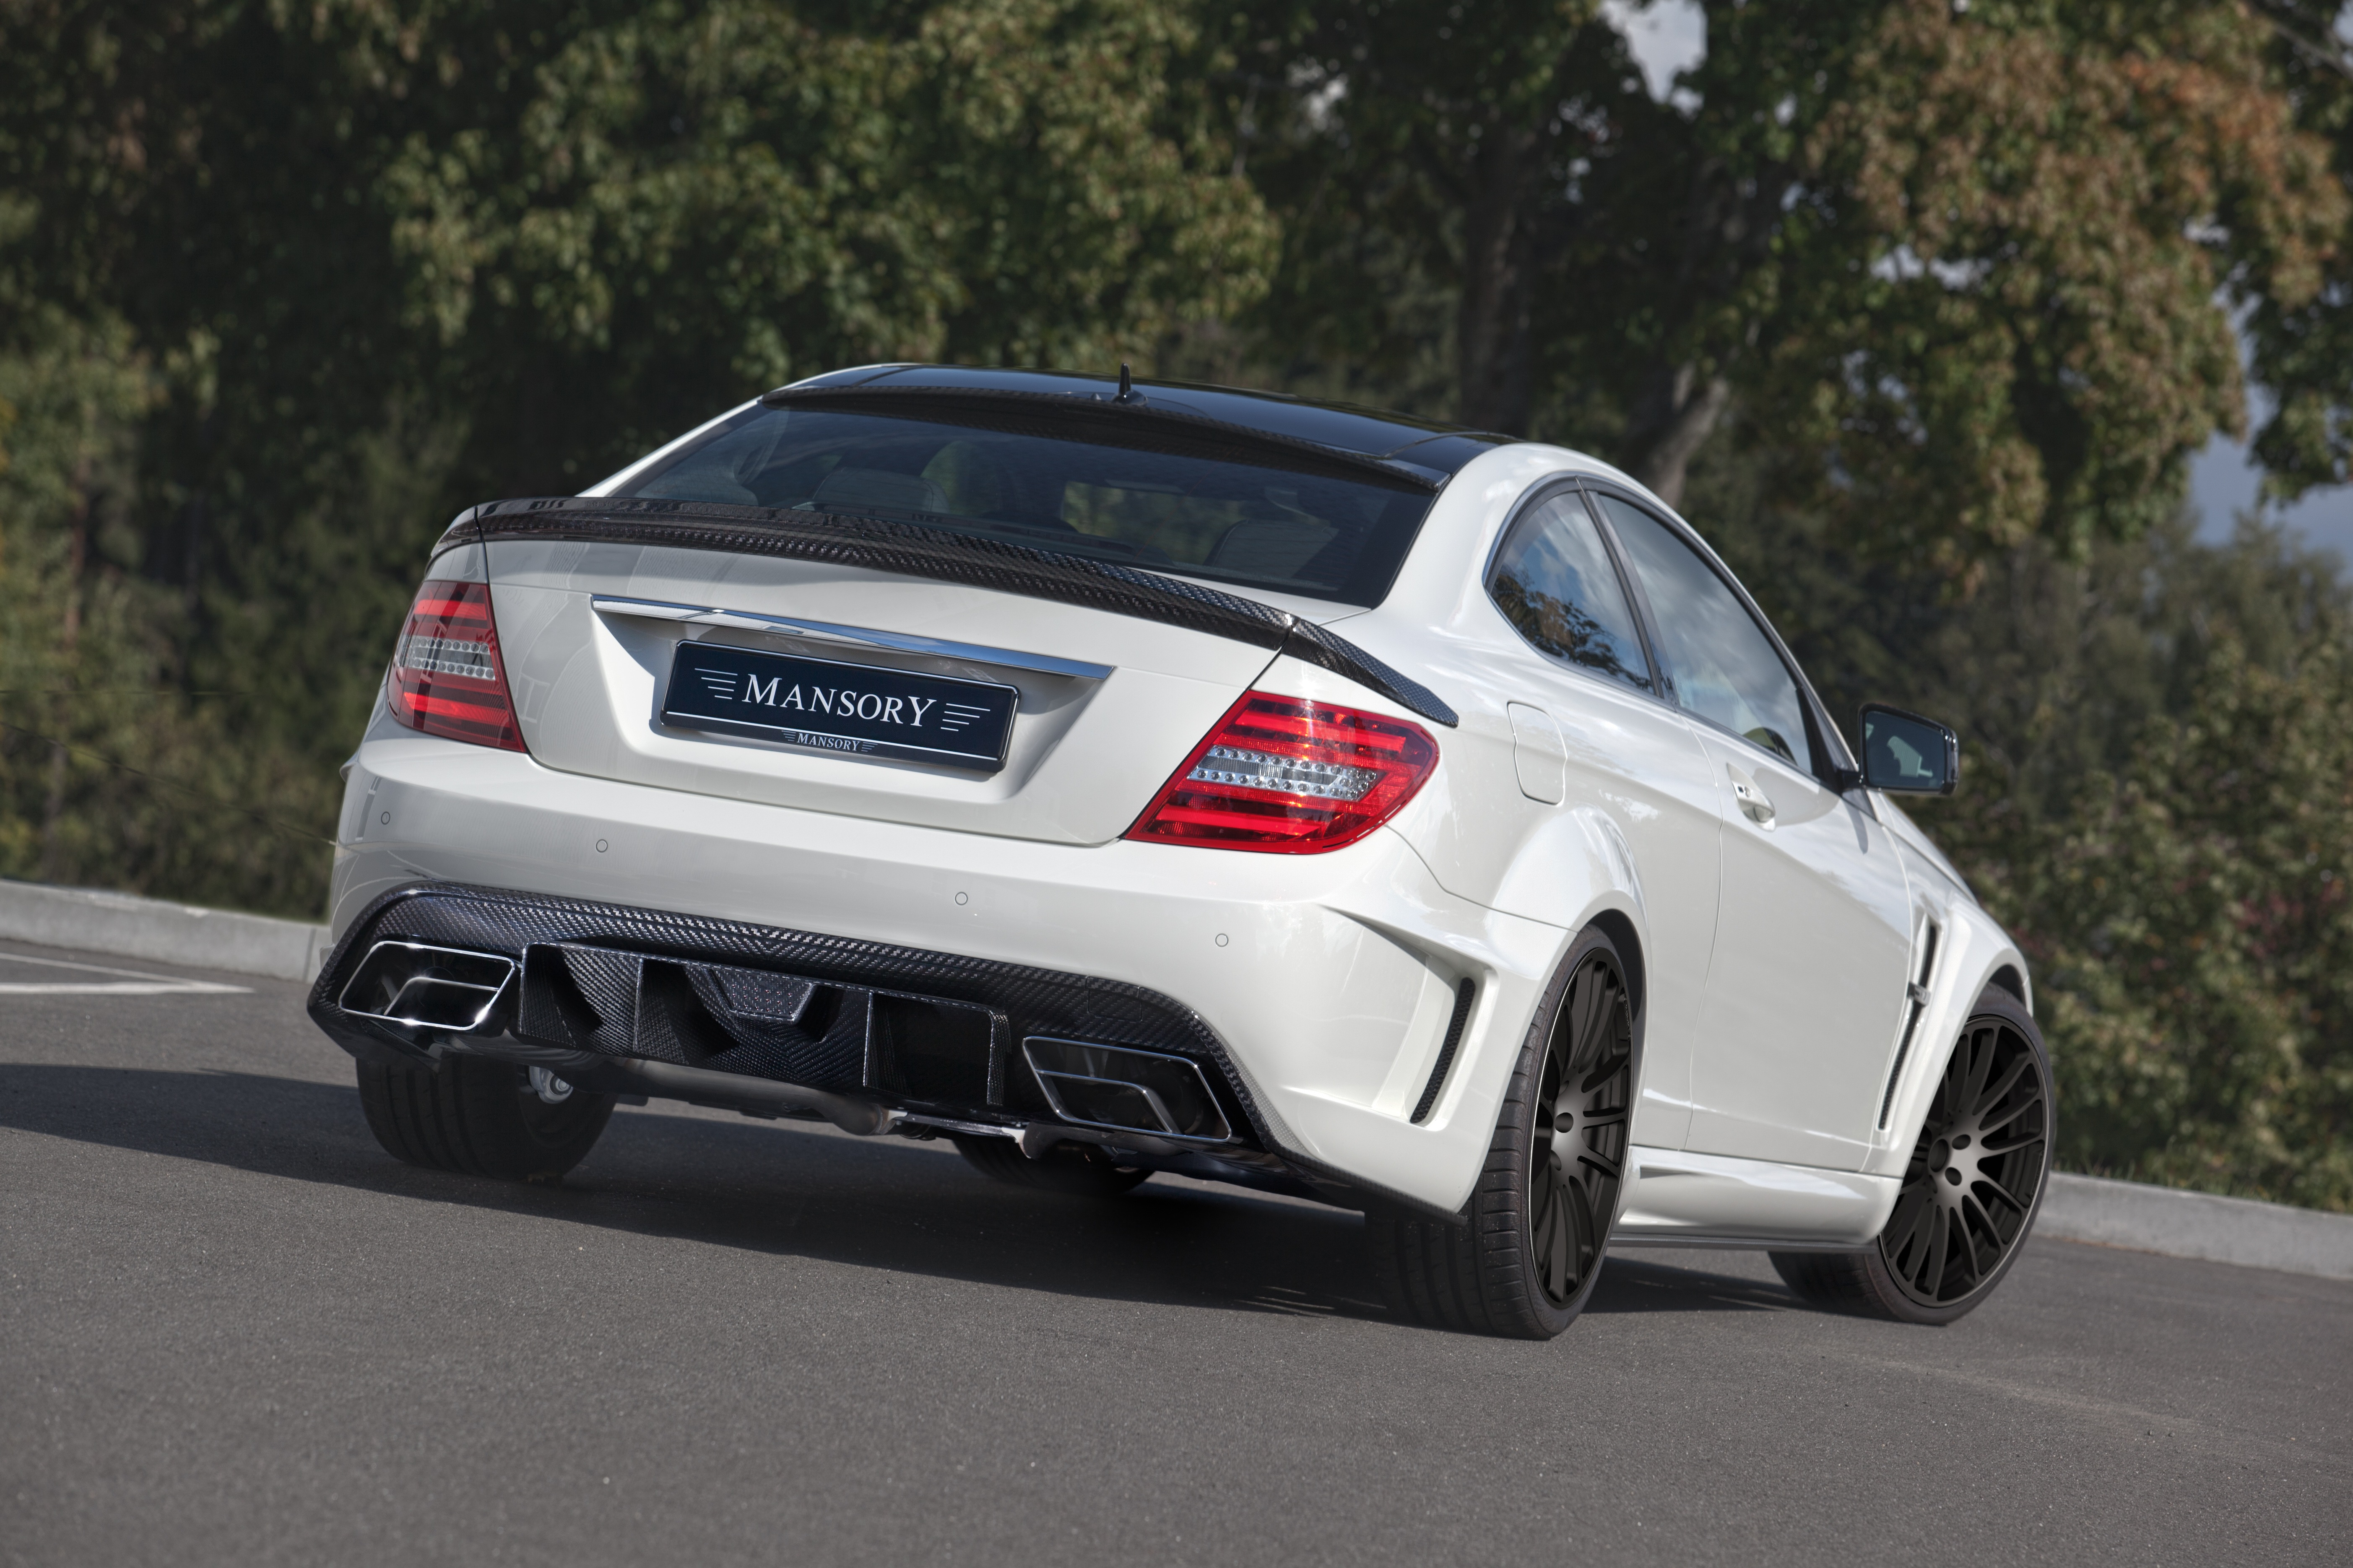 mansory_mercedes-benz_c-coupe_03.jpg